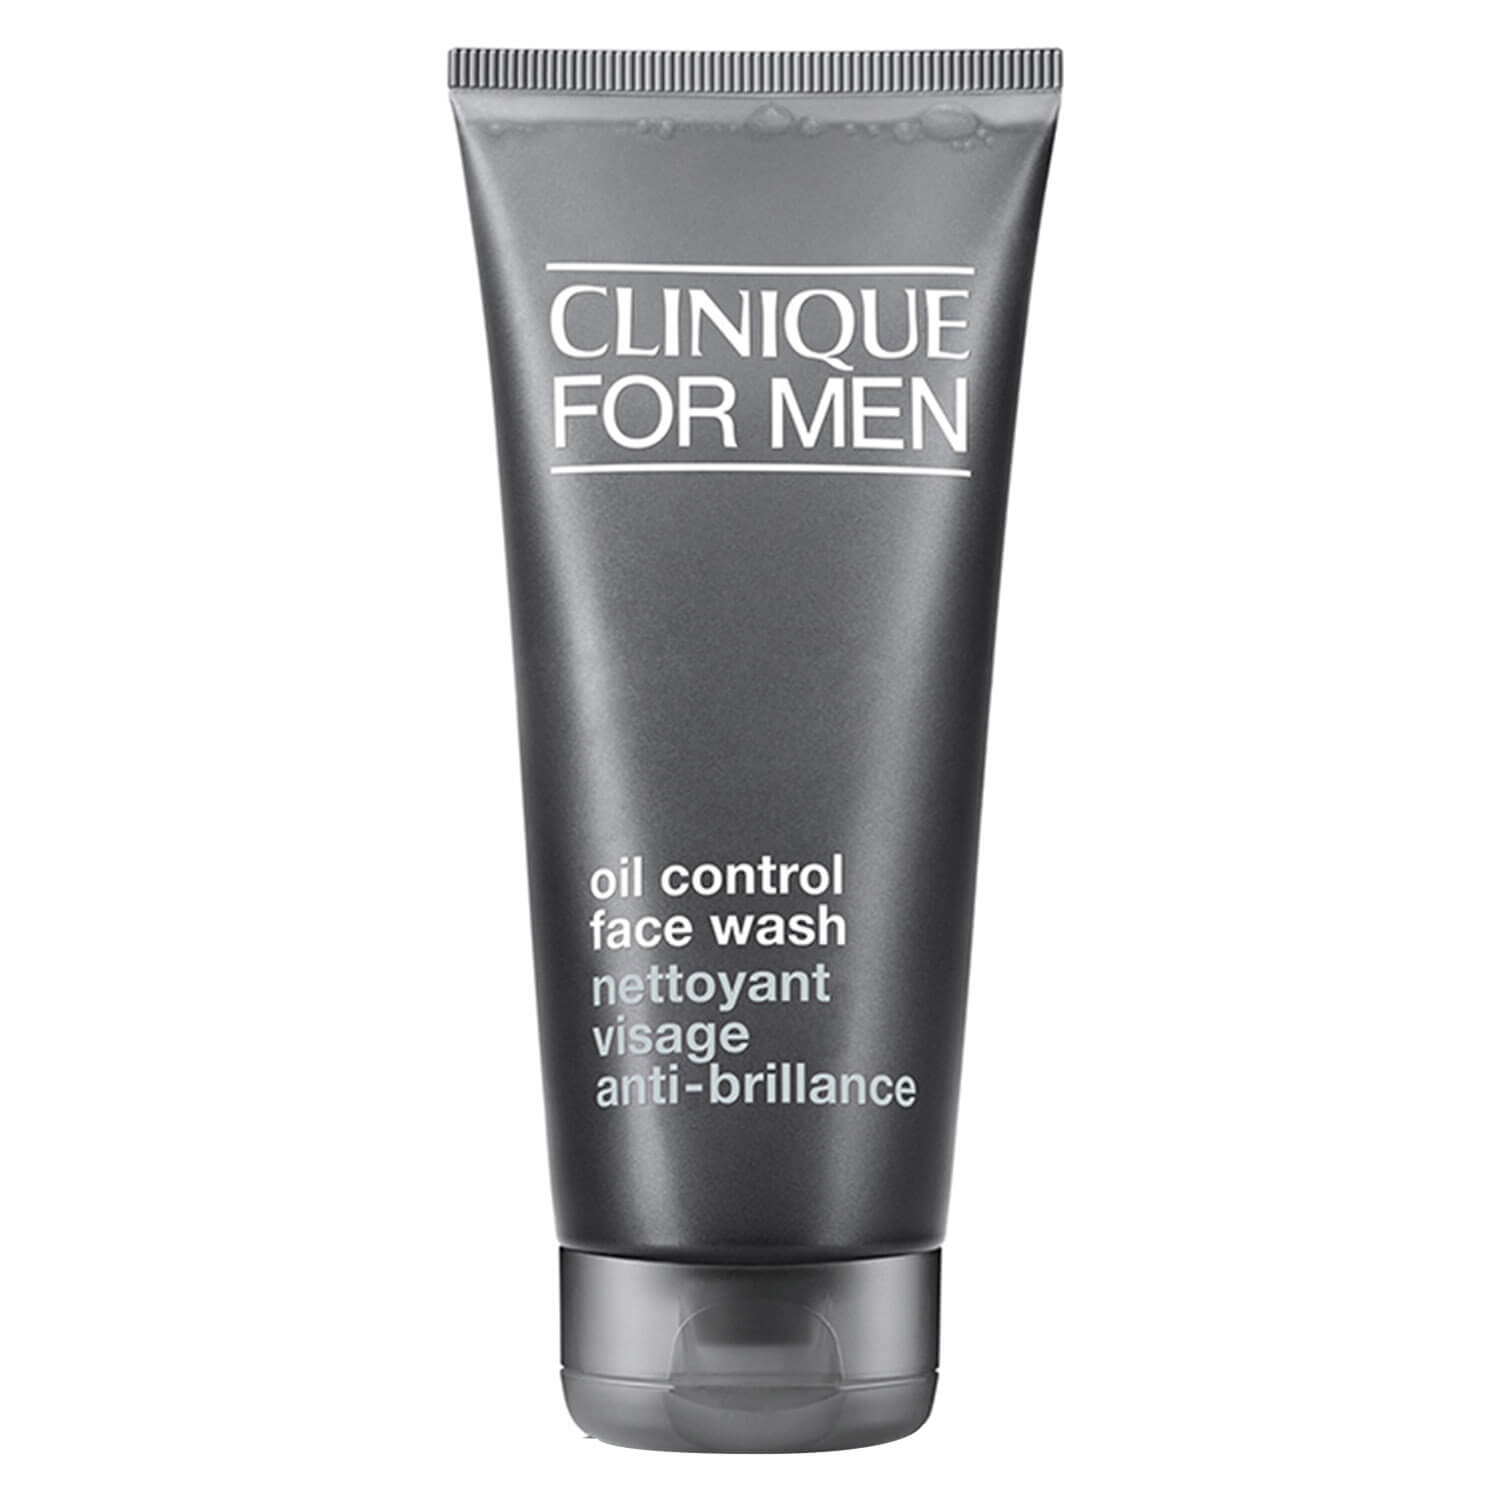 Clinique For Men - Oil Control Face Wash - 200ml